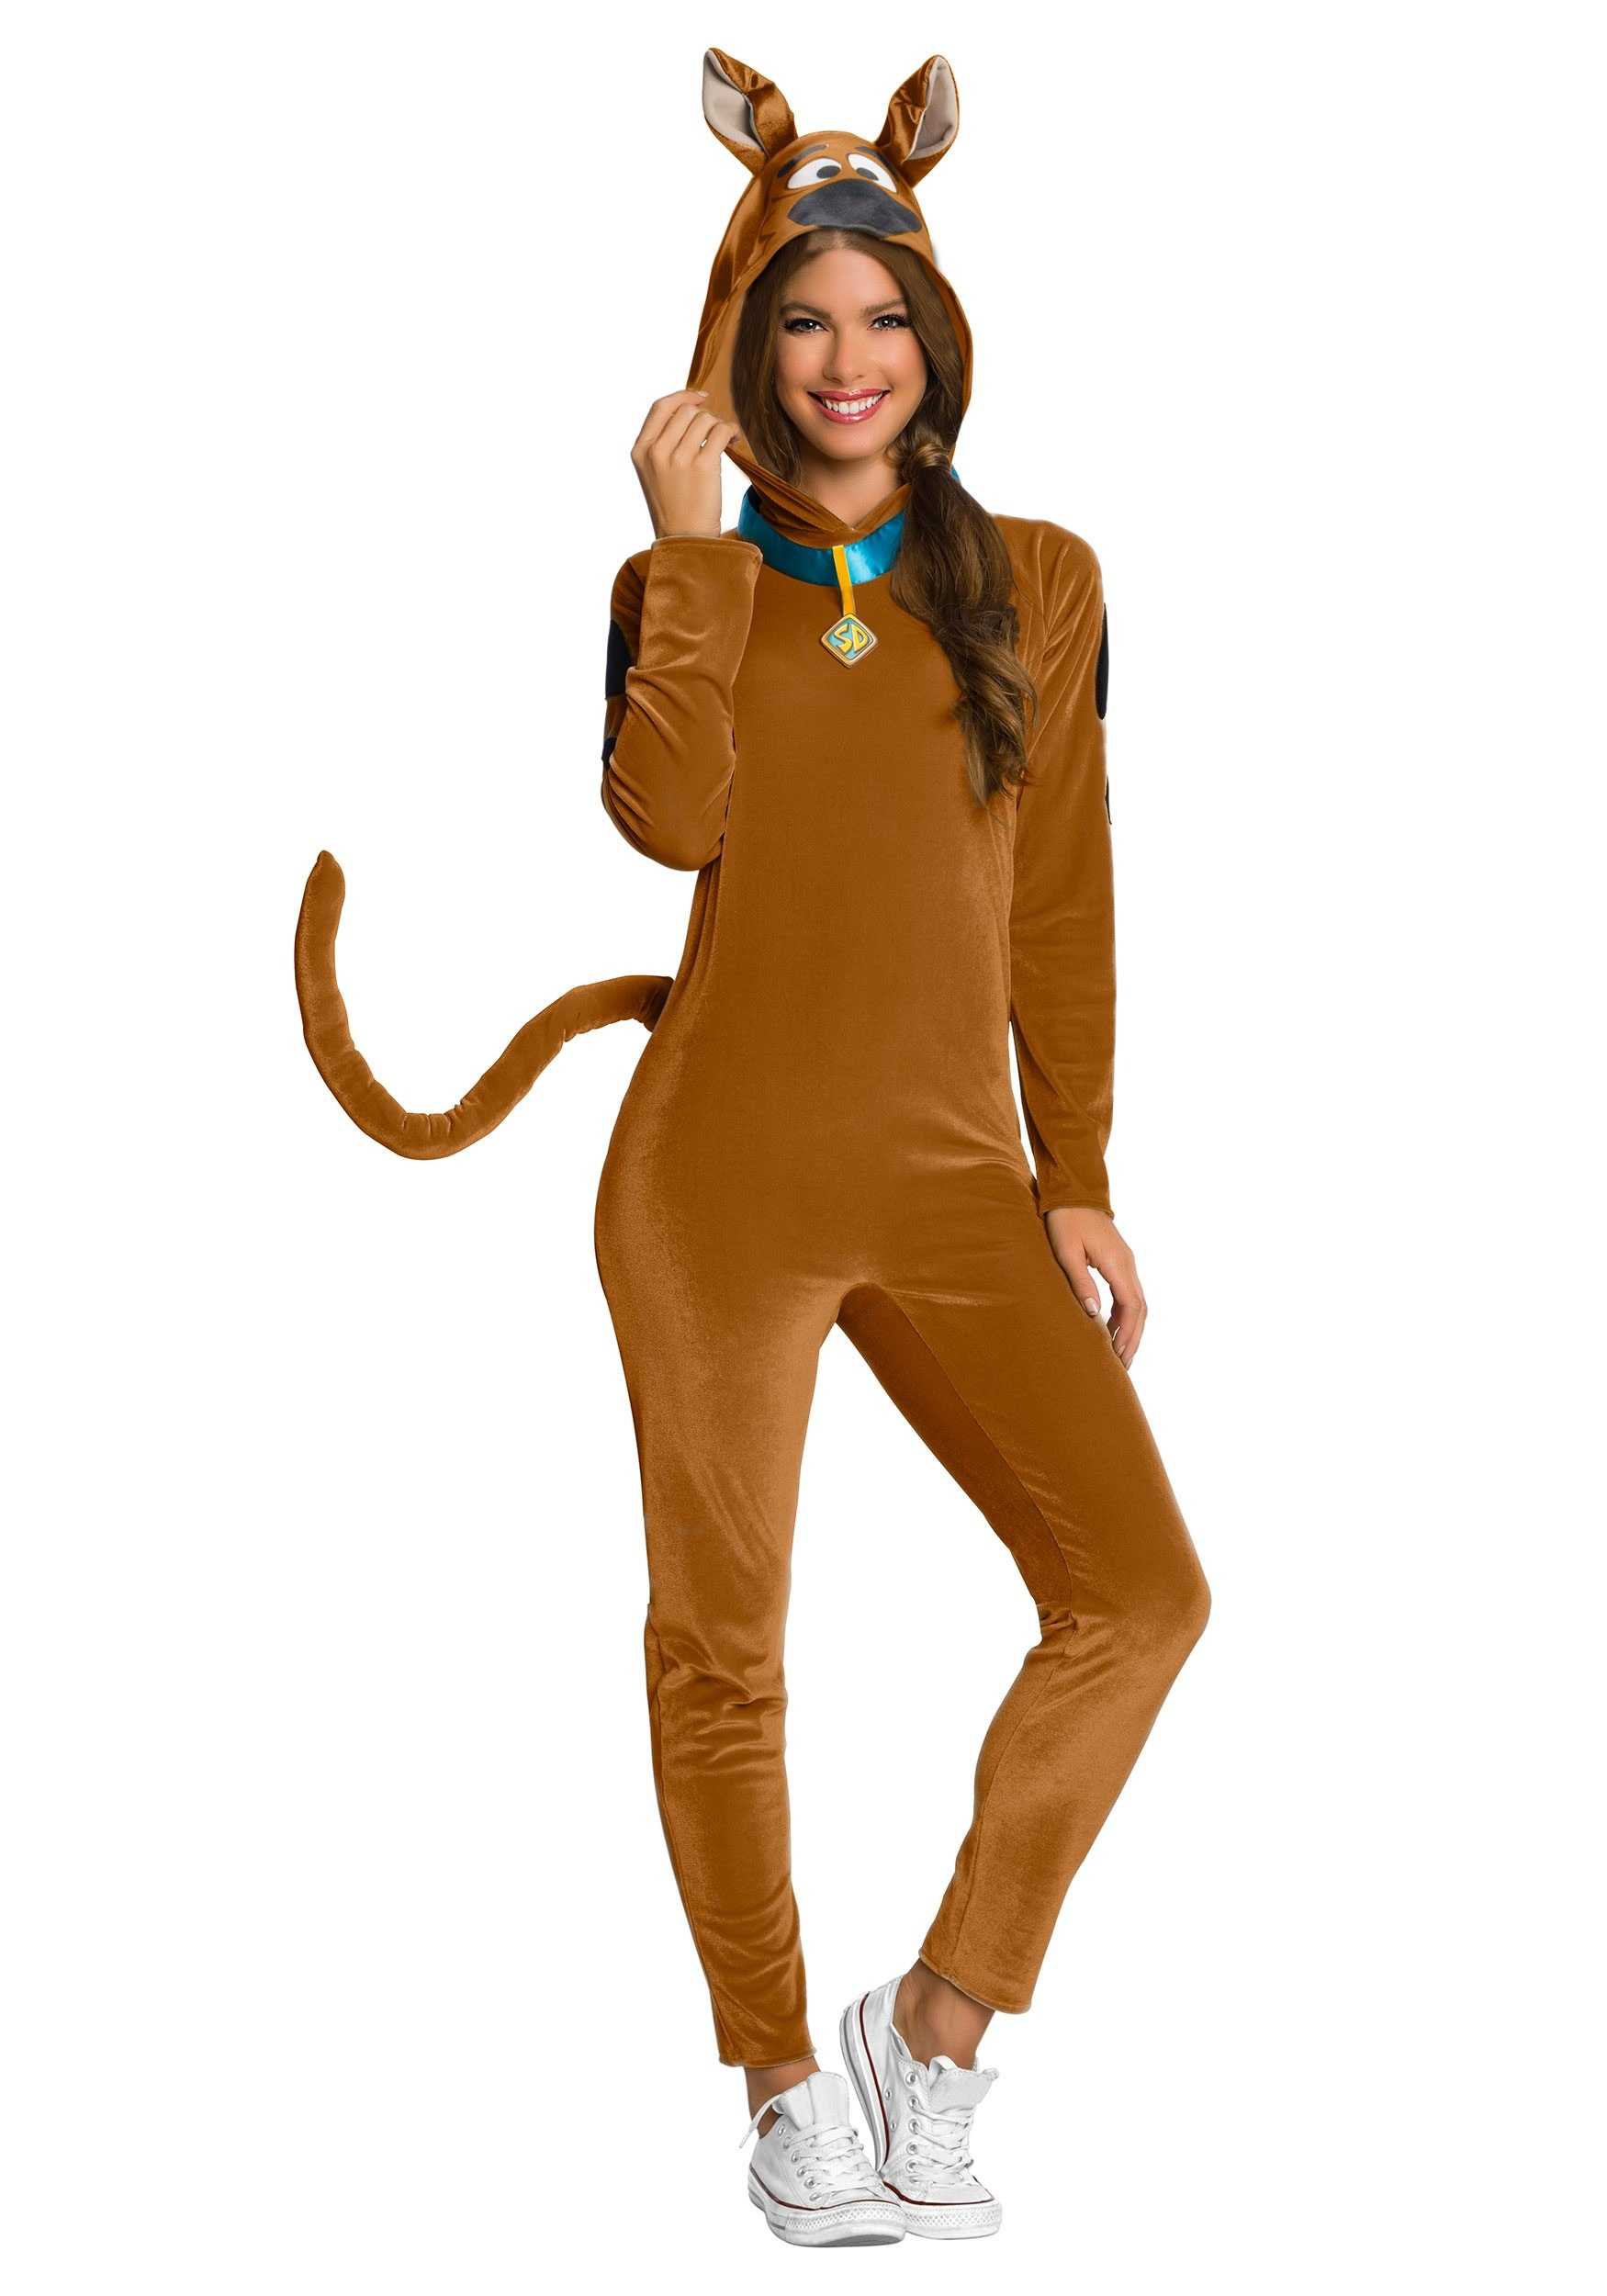 Scooby-Doo Women's Costume Jumpsuit W/ Collar and Tail